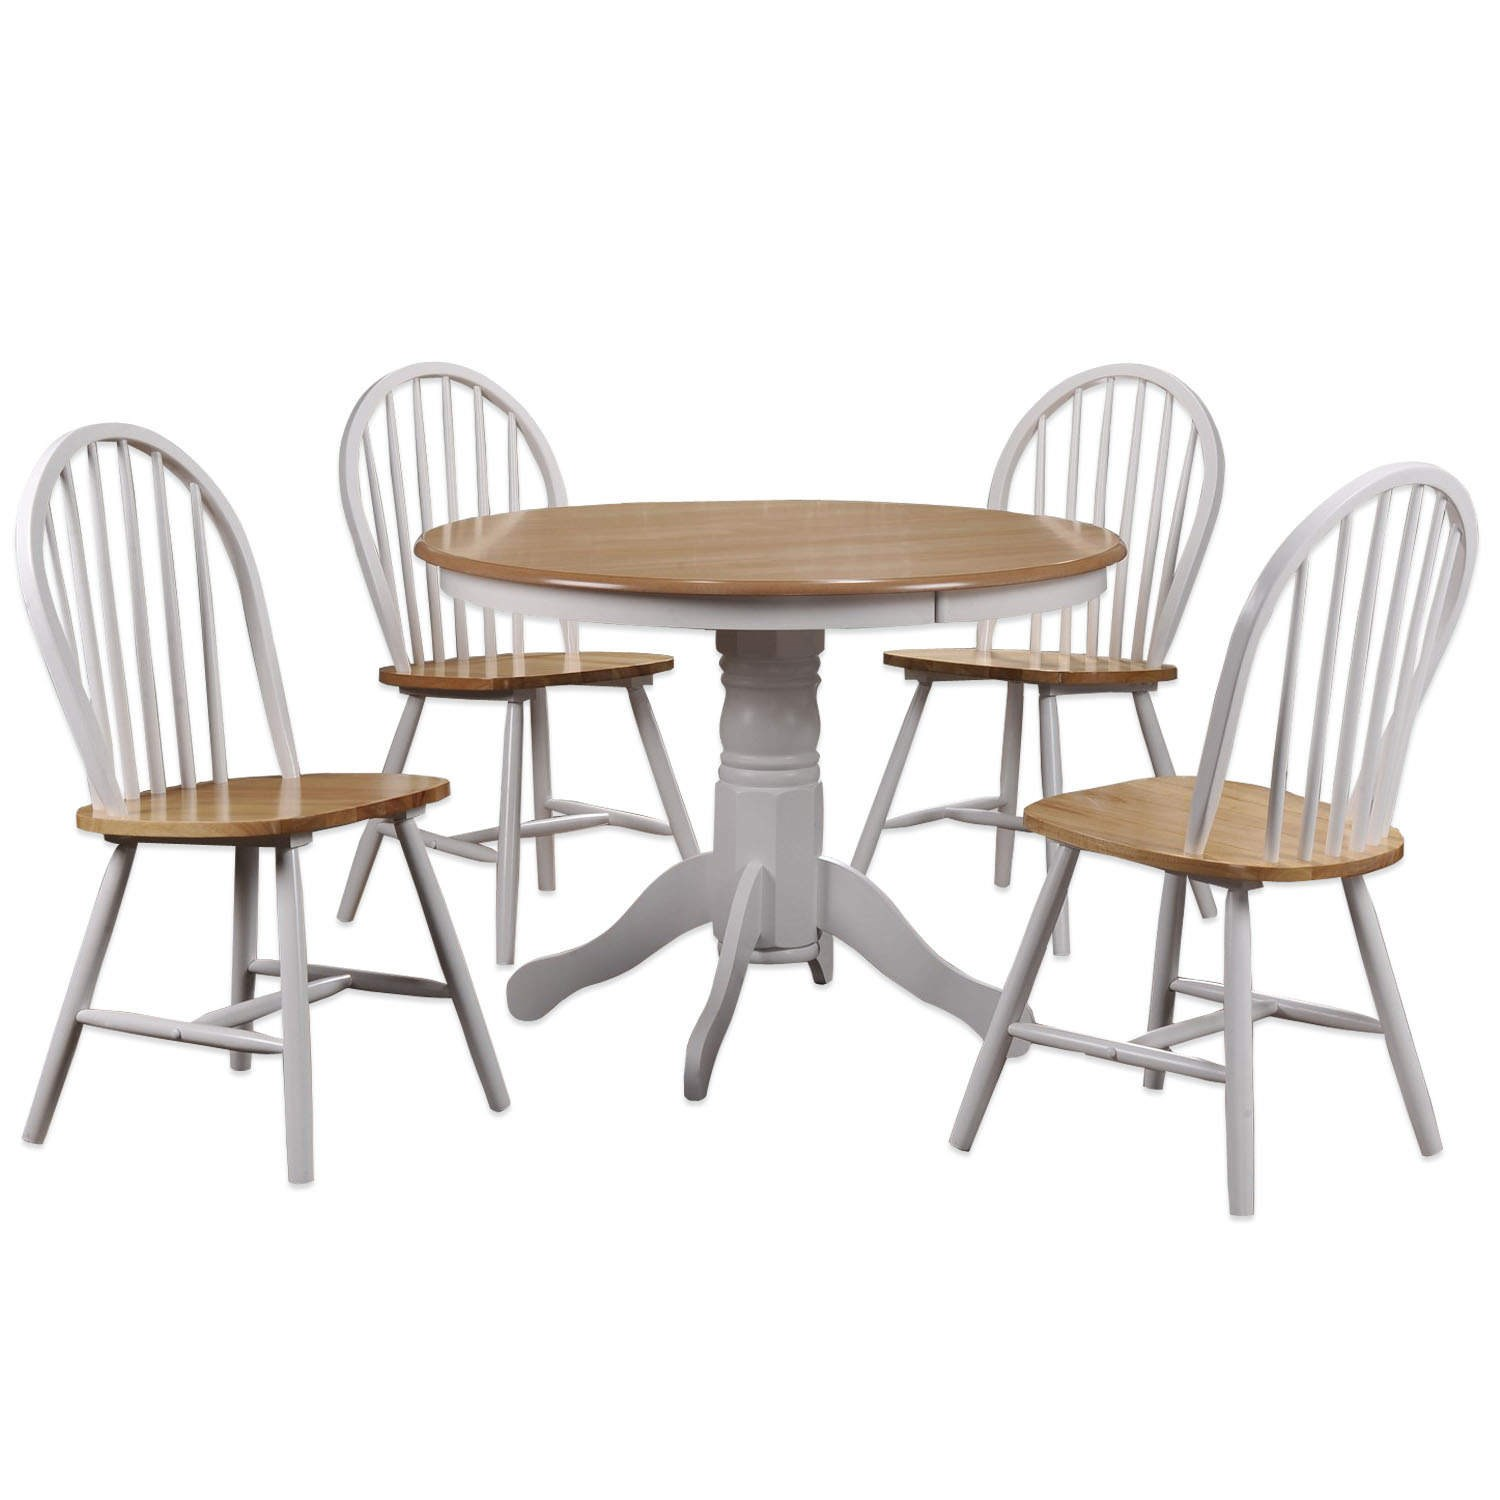 Round solid wood dining table and 4 chairs ebay for Solid wood round dining room table